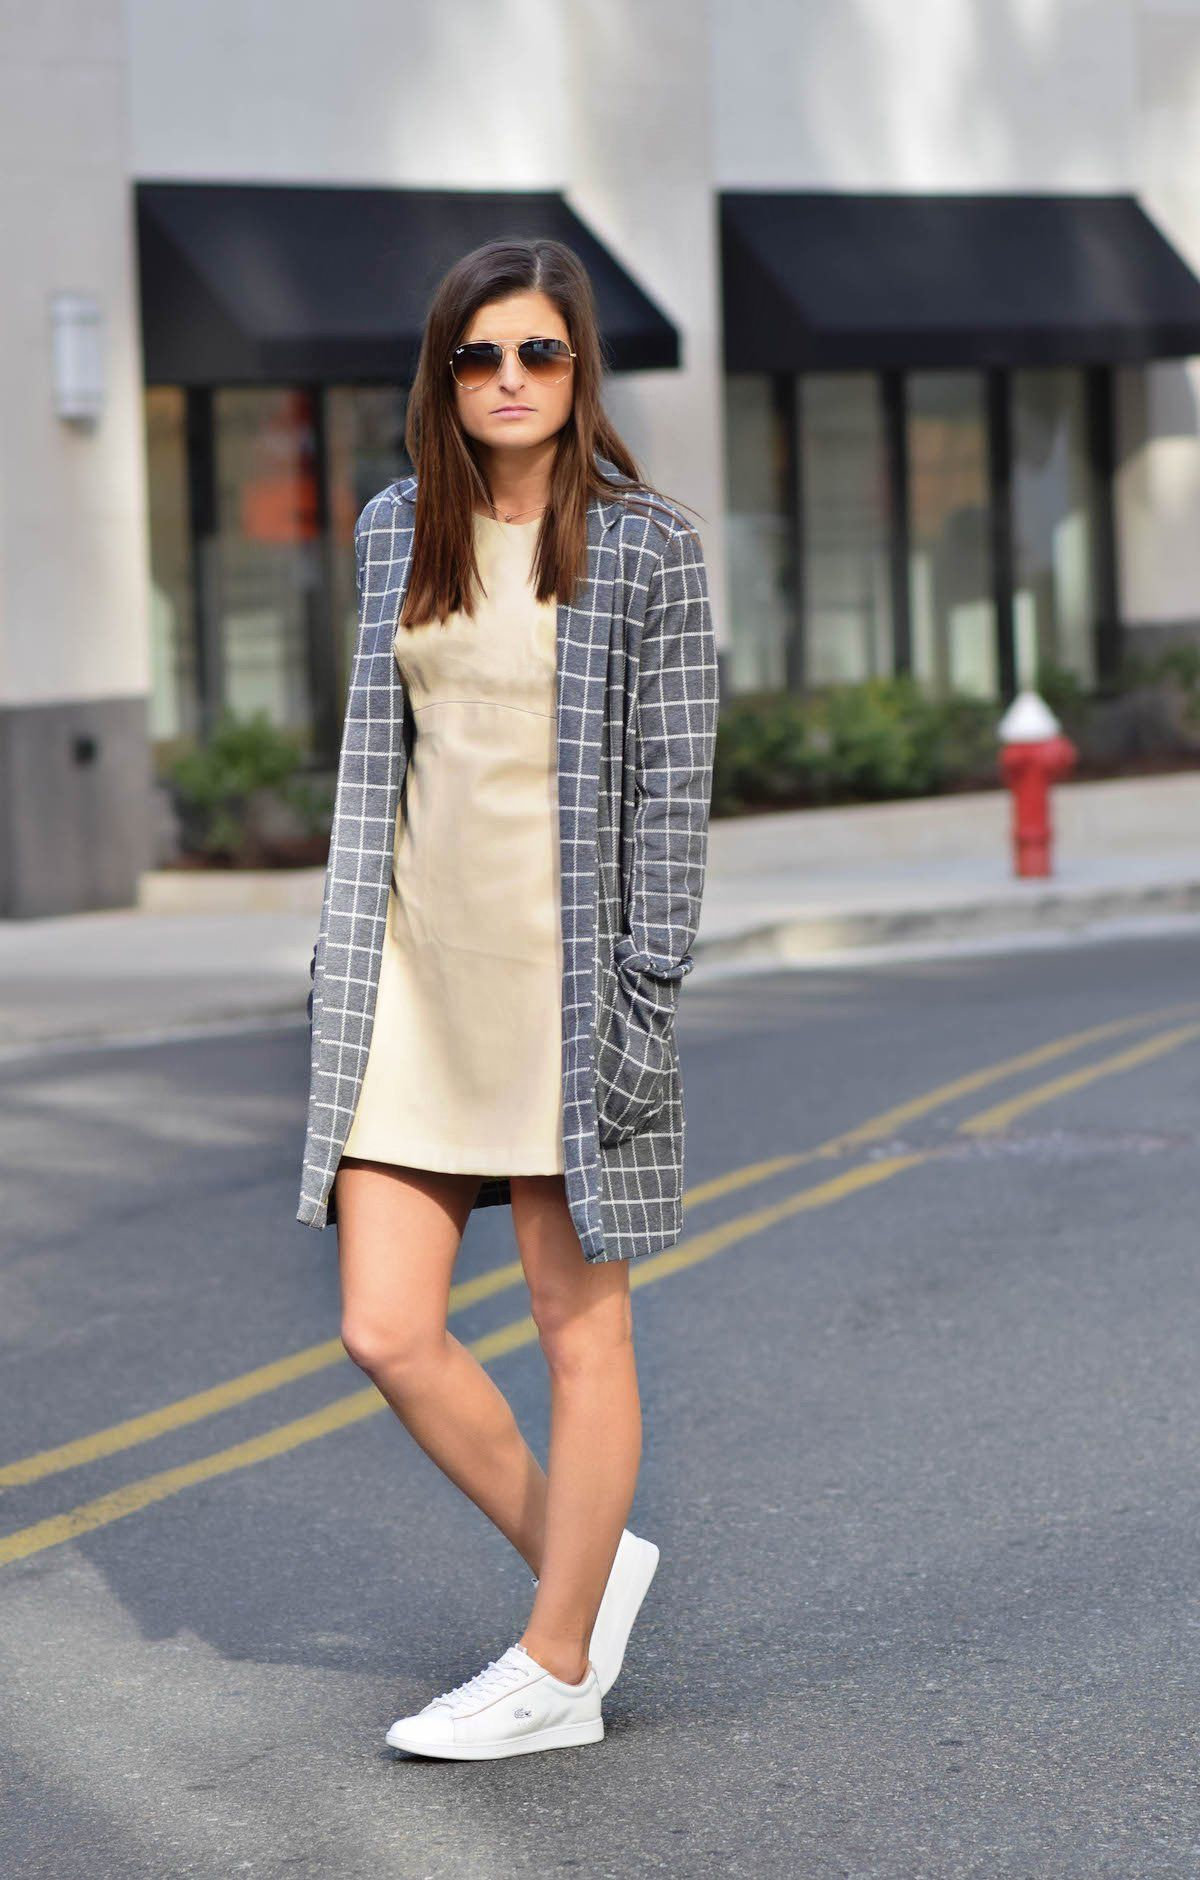 Blush'in Faux Motion | Zara nude faux leather dress, Shop Public check  print trench coat, Lacoste white sneakers, nyc street style, winter outfit  ideas, ...